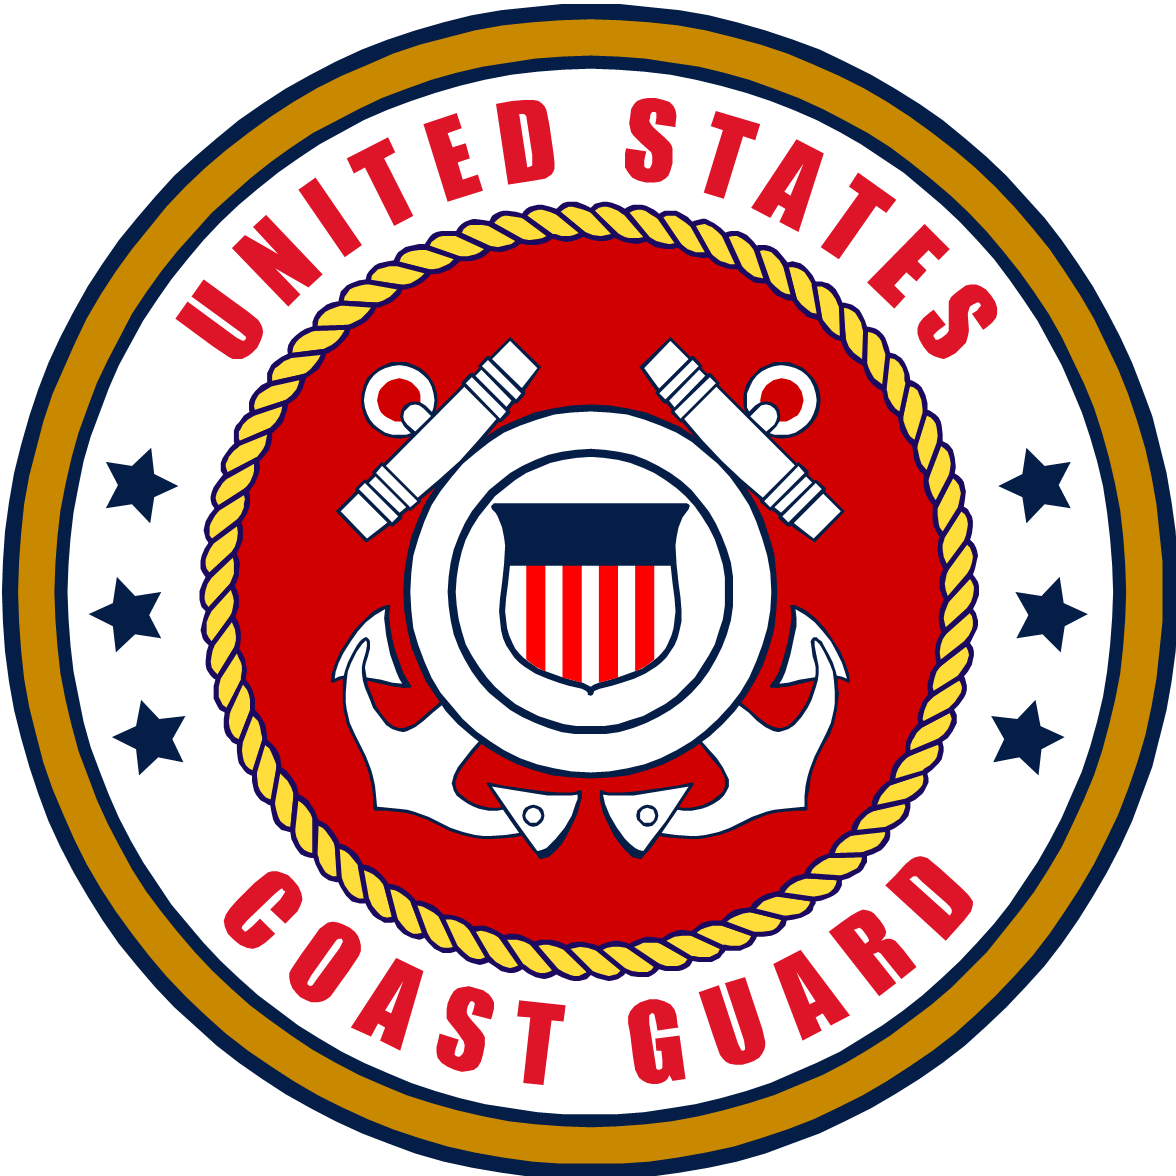 united states coast guard Find great deals on ebay for united states coast guard and united states coast guard uniform shop with confidence.